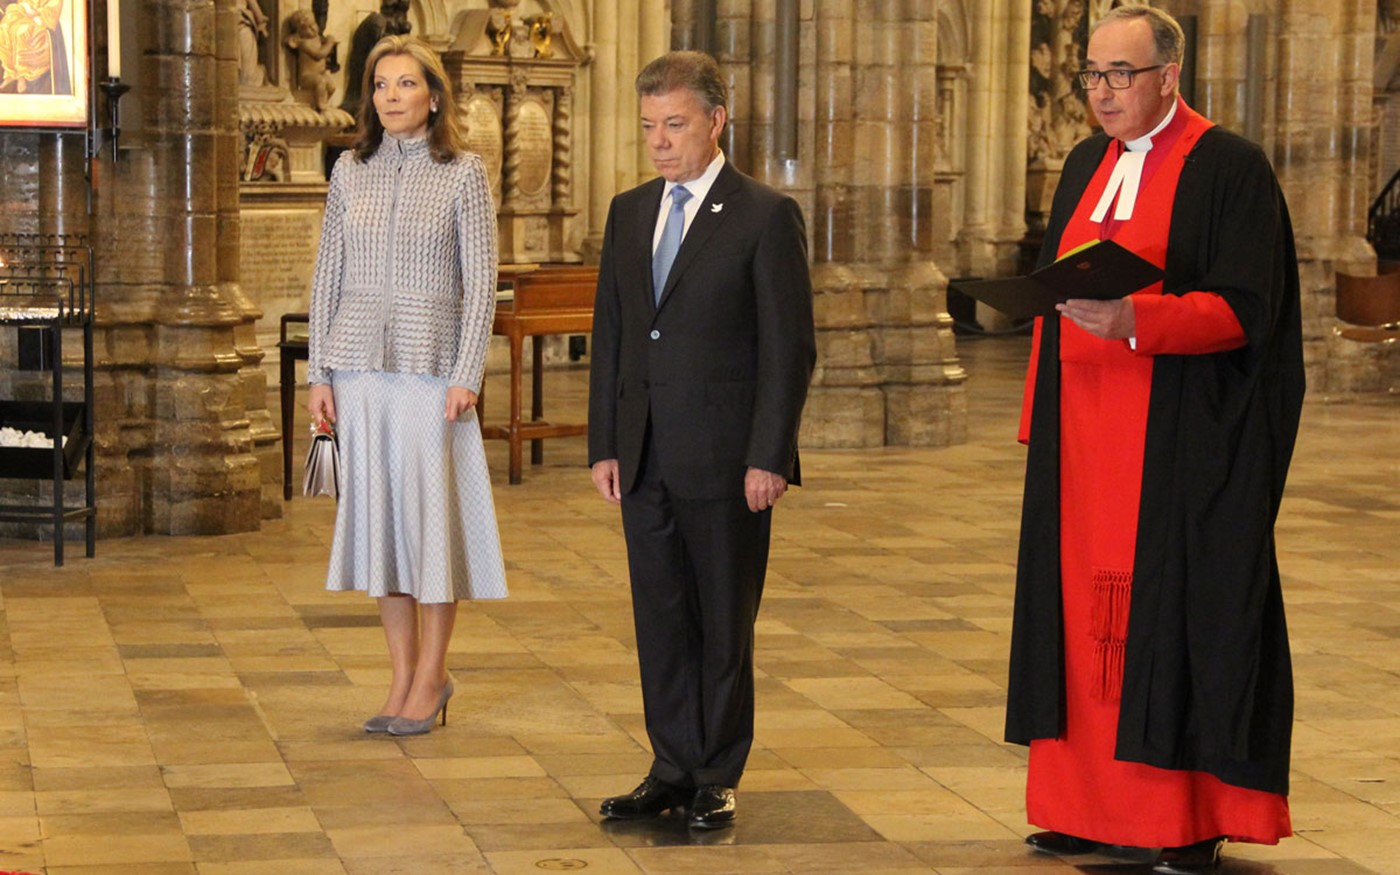 President of Colombia visits Westminster Abbey